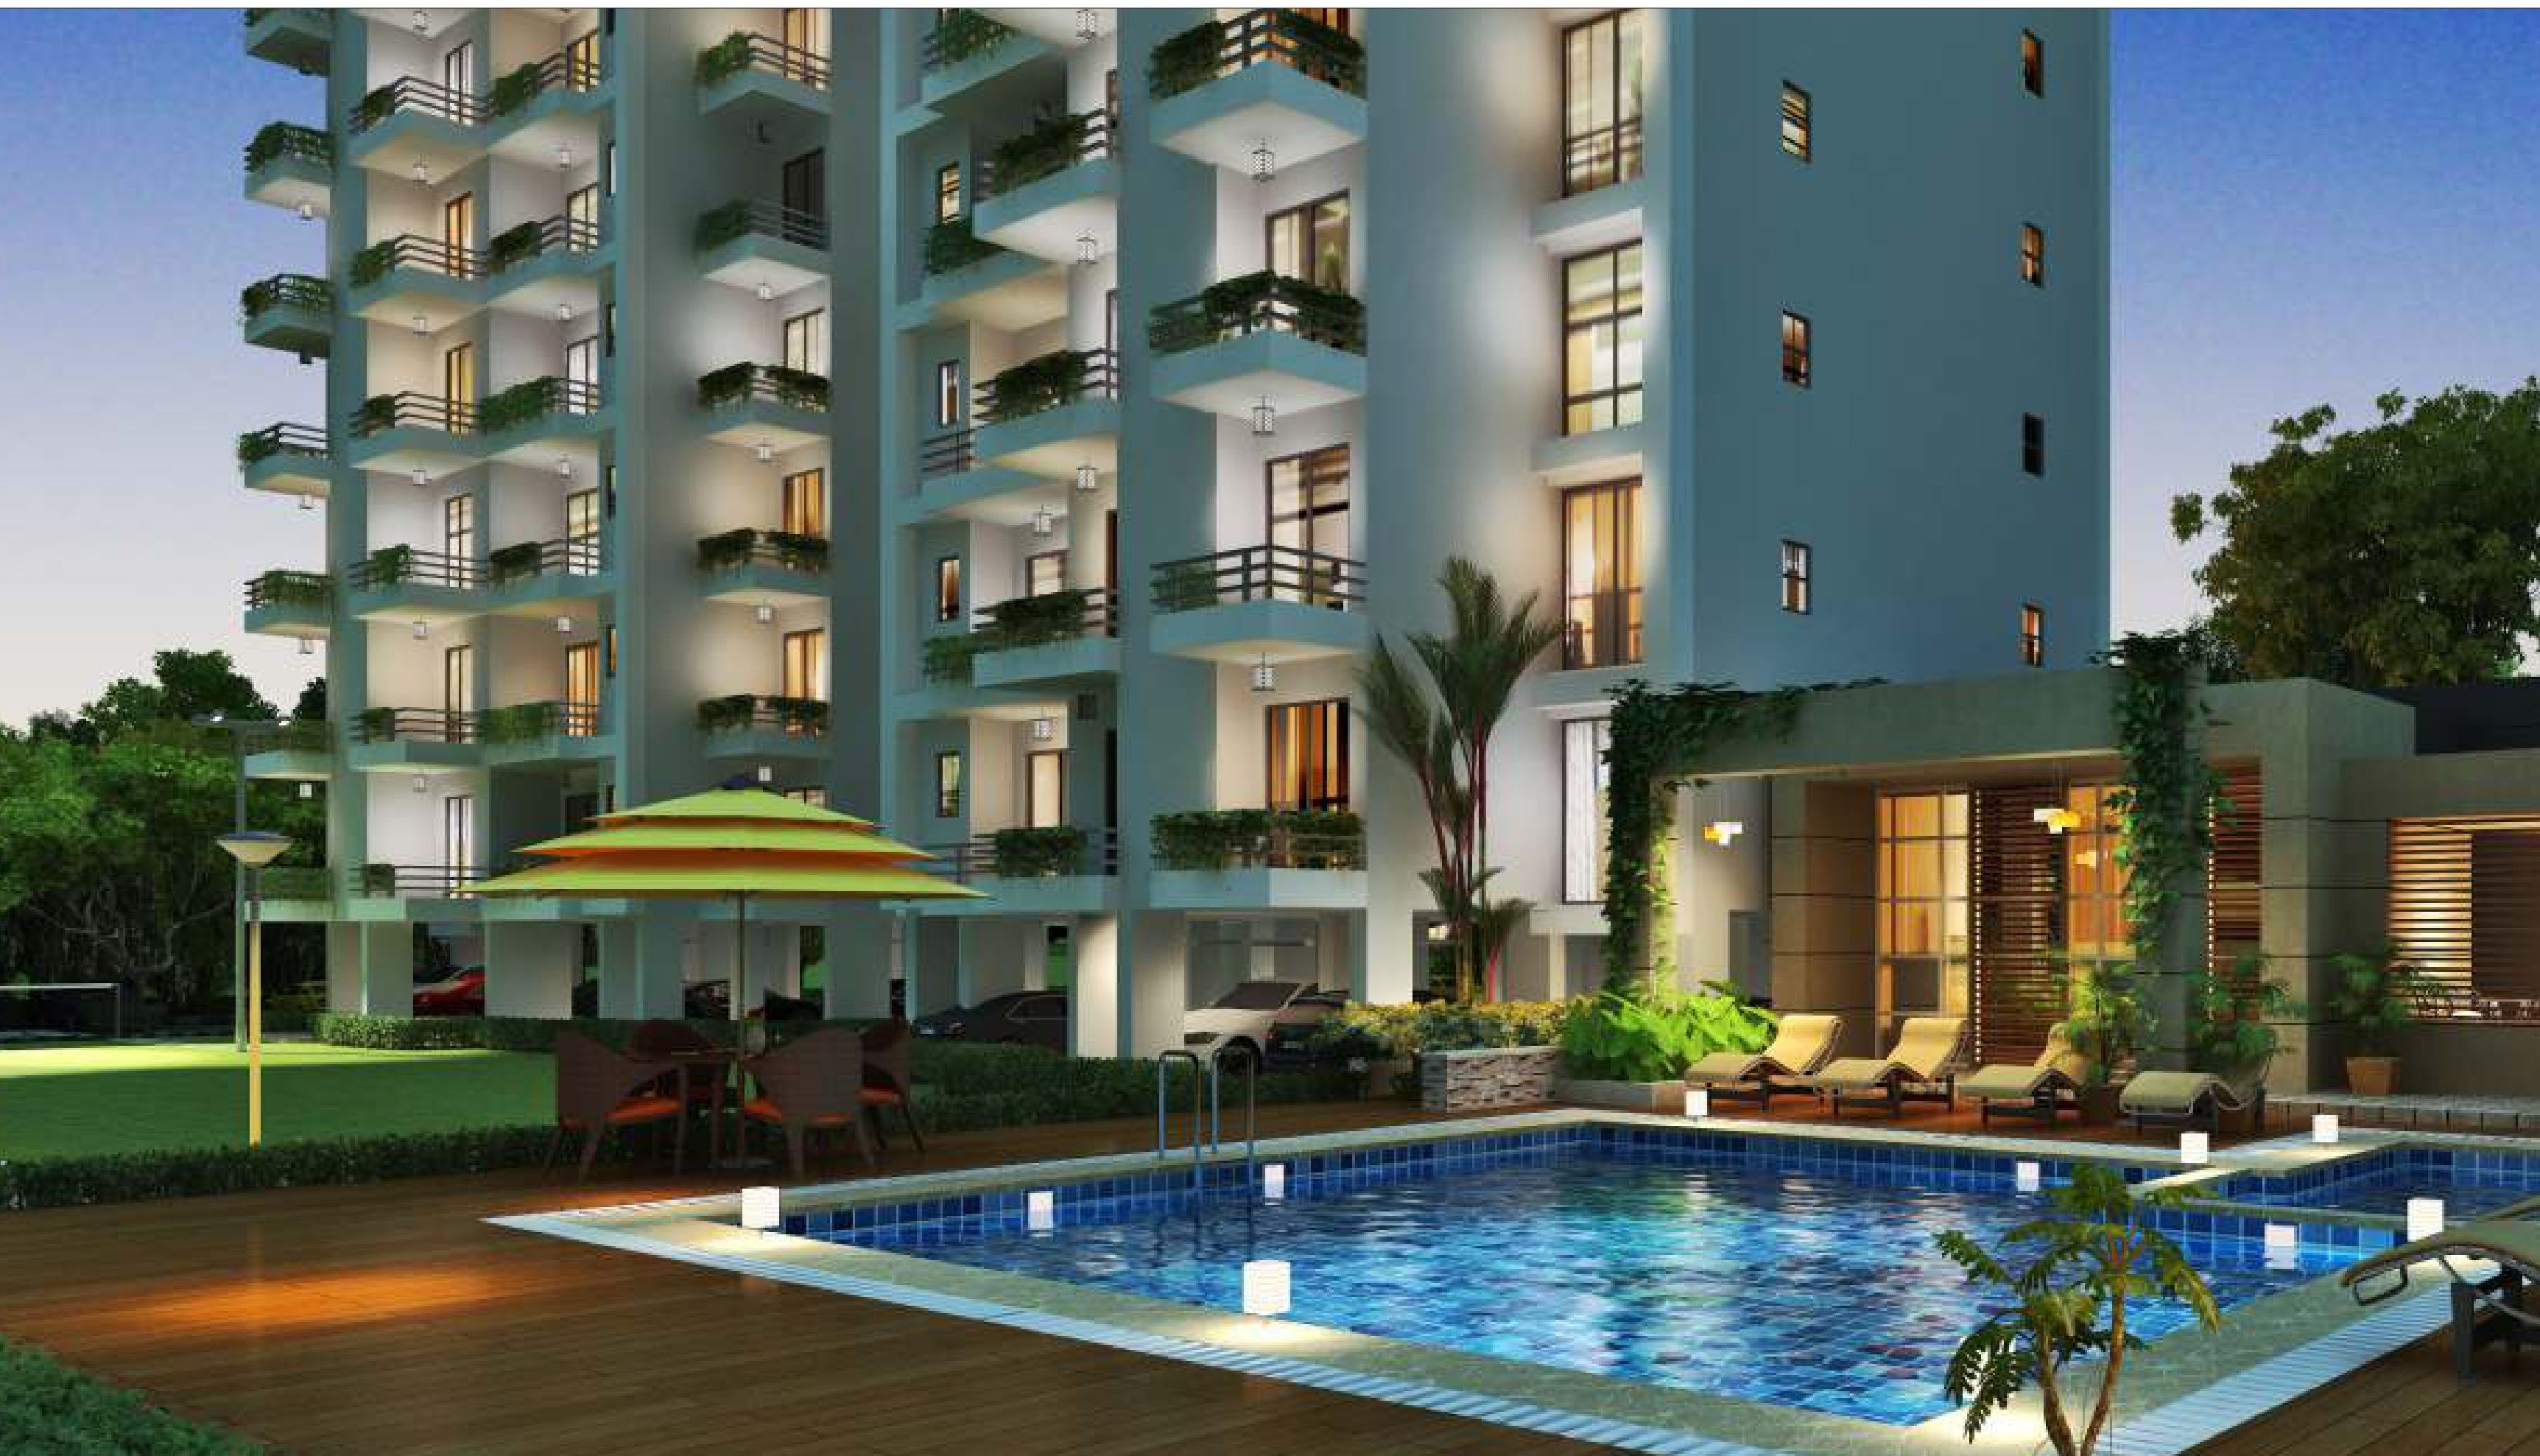 Max Royal Offers 2 And 3 Bhk Apartments That Are Designed